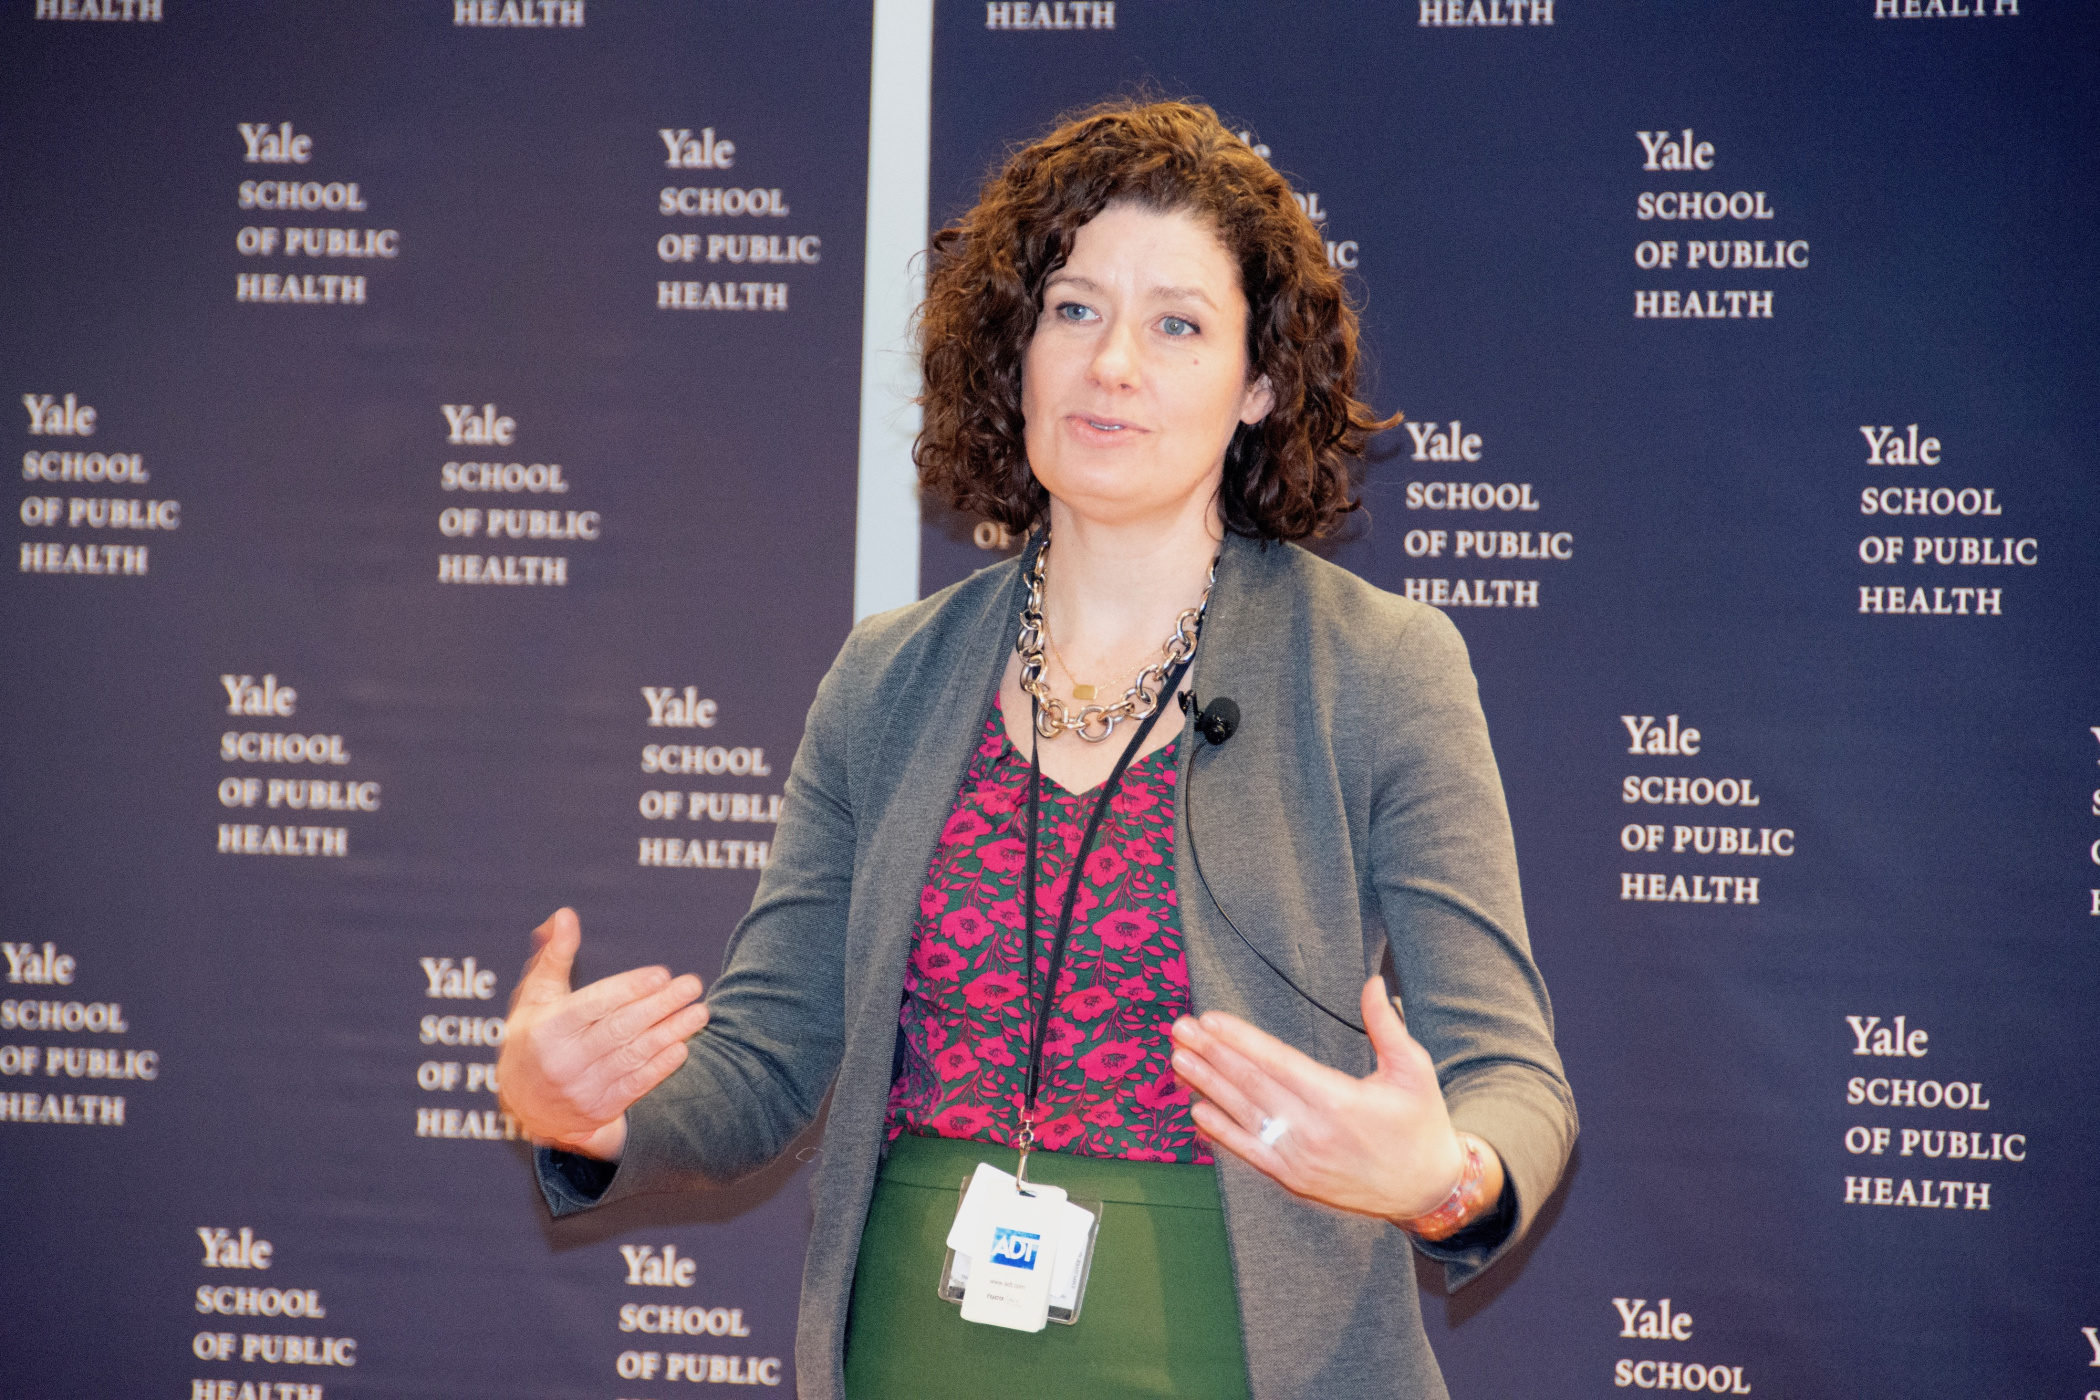 Connecticut Department of Energy and Environmental Protection Commissioner Katie Dykes speaks at the Yale School of Public Health on Feb. 19.